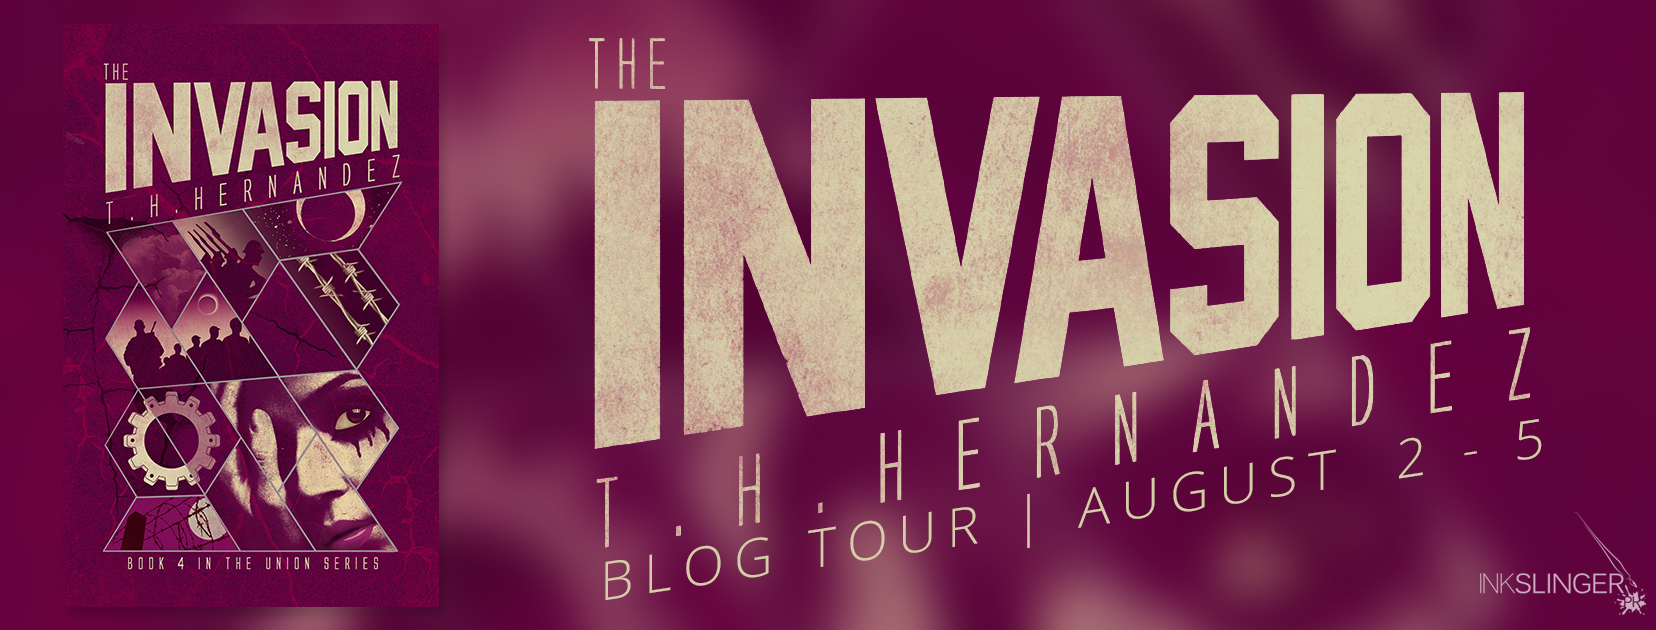 BOOK REVIEW + GIVEAWAY – The Invasion (The Union #4) by T.H. Hernandez